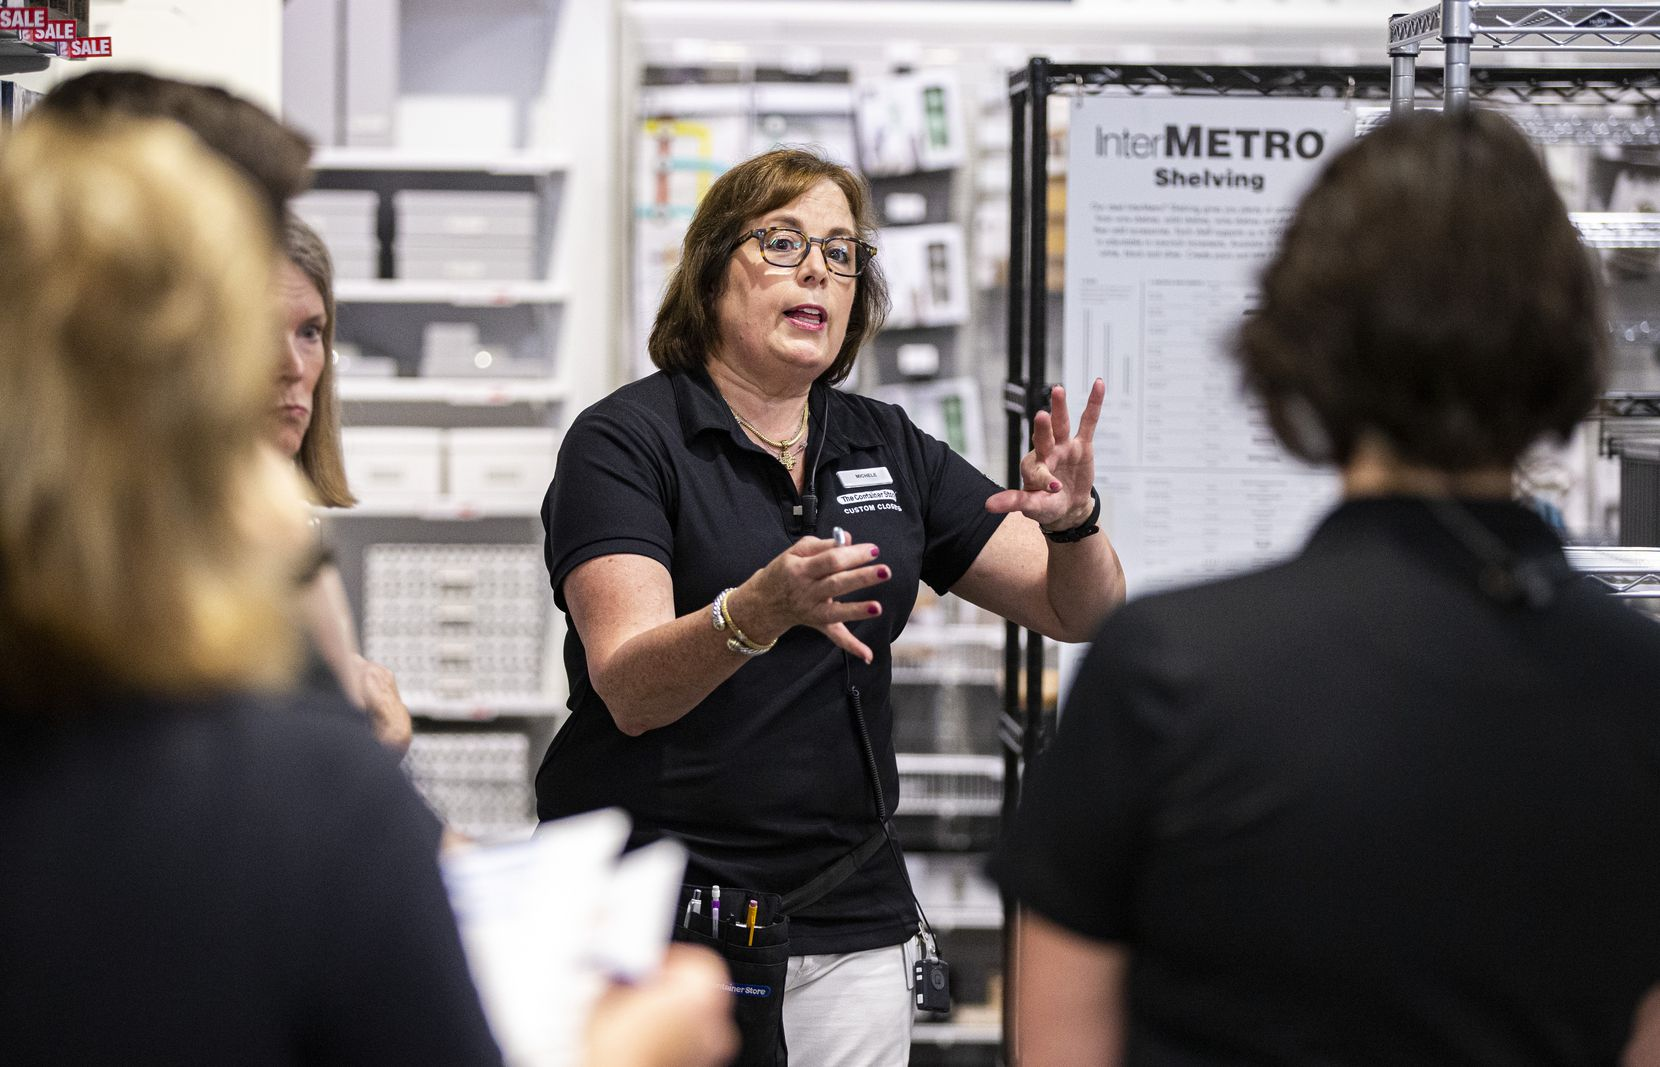 Michele McDermett, an employee at The Container Store, explained to coworkers how casters are installed on InterMetro shelves during an employee meeting before the store opened.